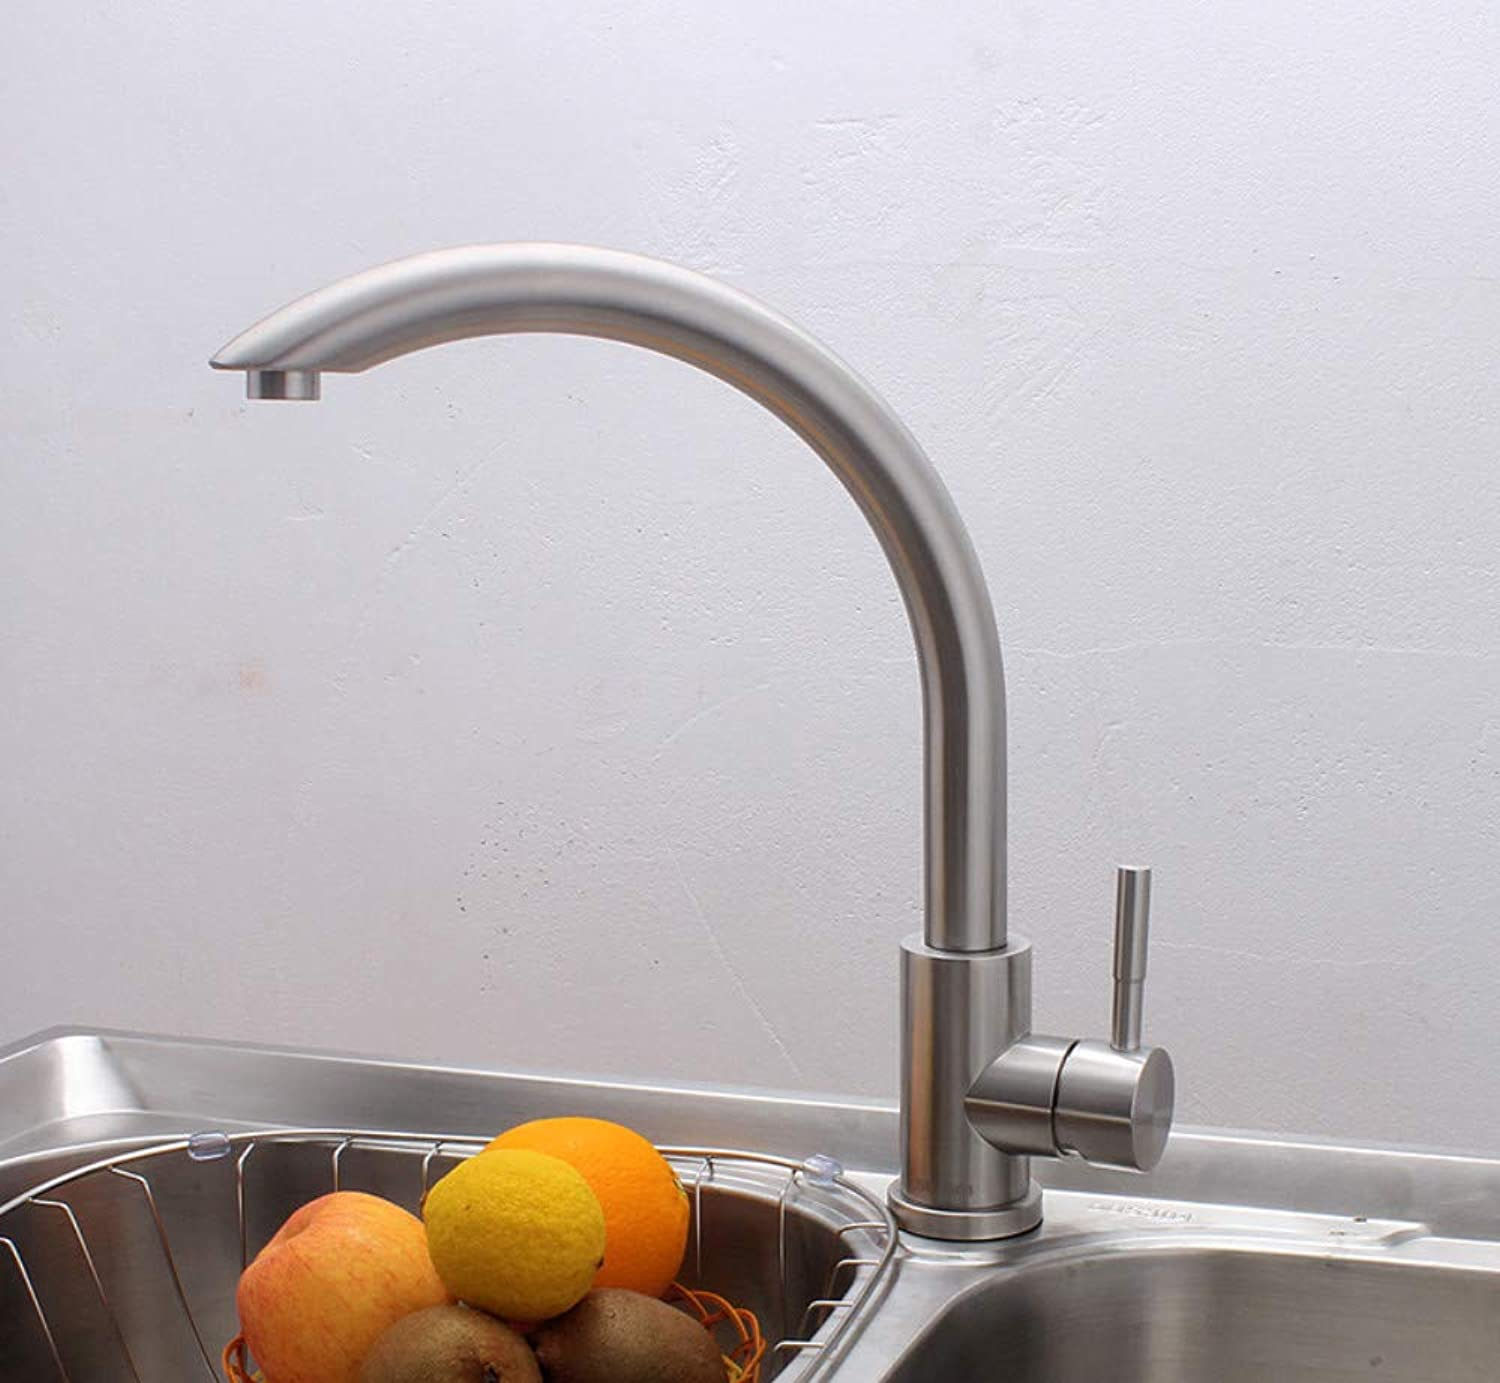 Stainless Steel Faucet Thermostat Kitchen Faucet Hot and Cold Water Sink Sink Mixing Valve Faucet